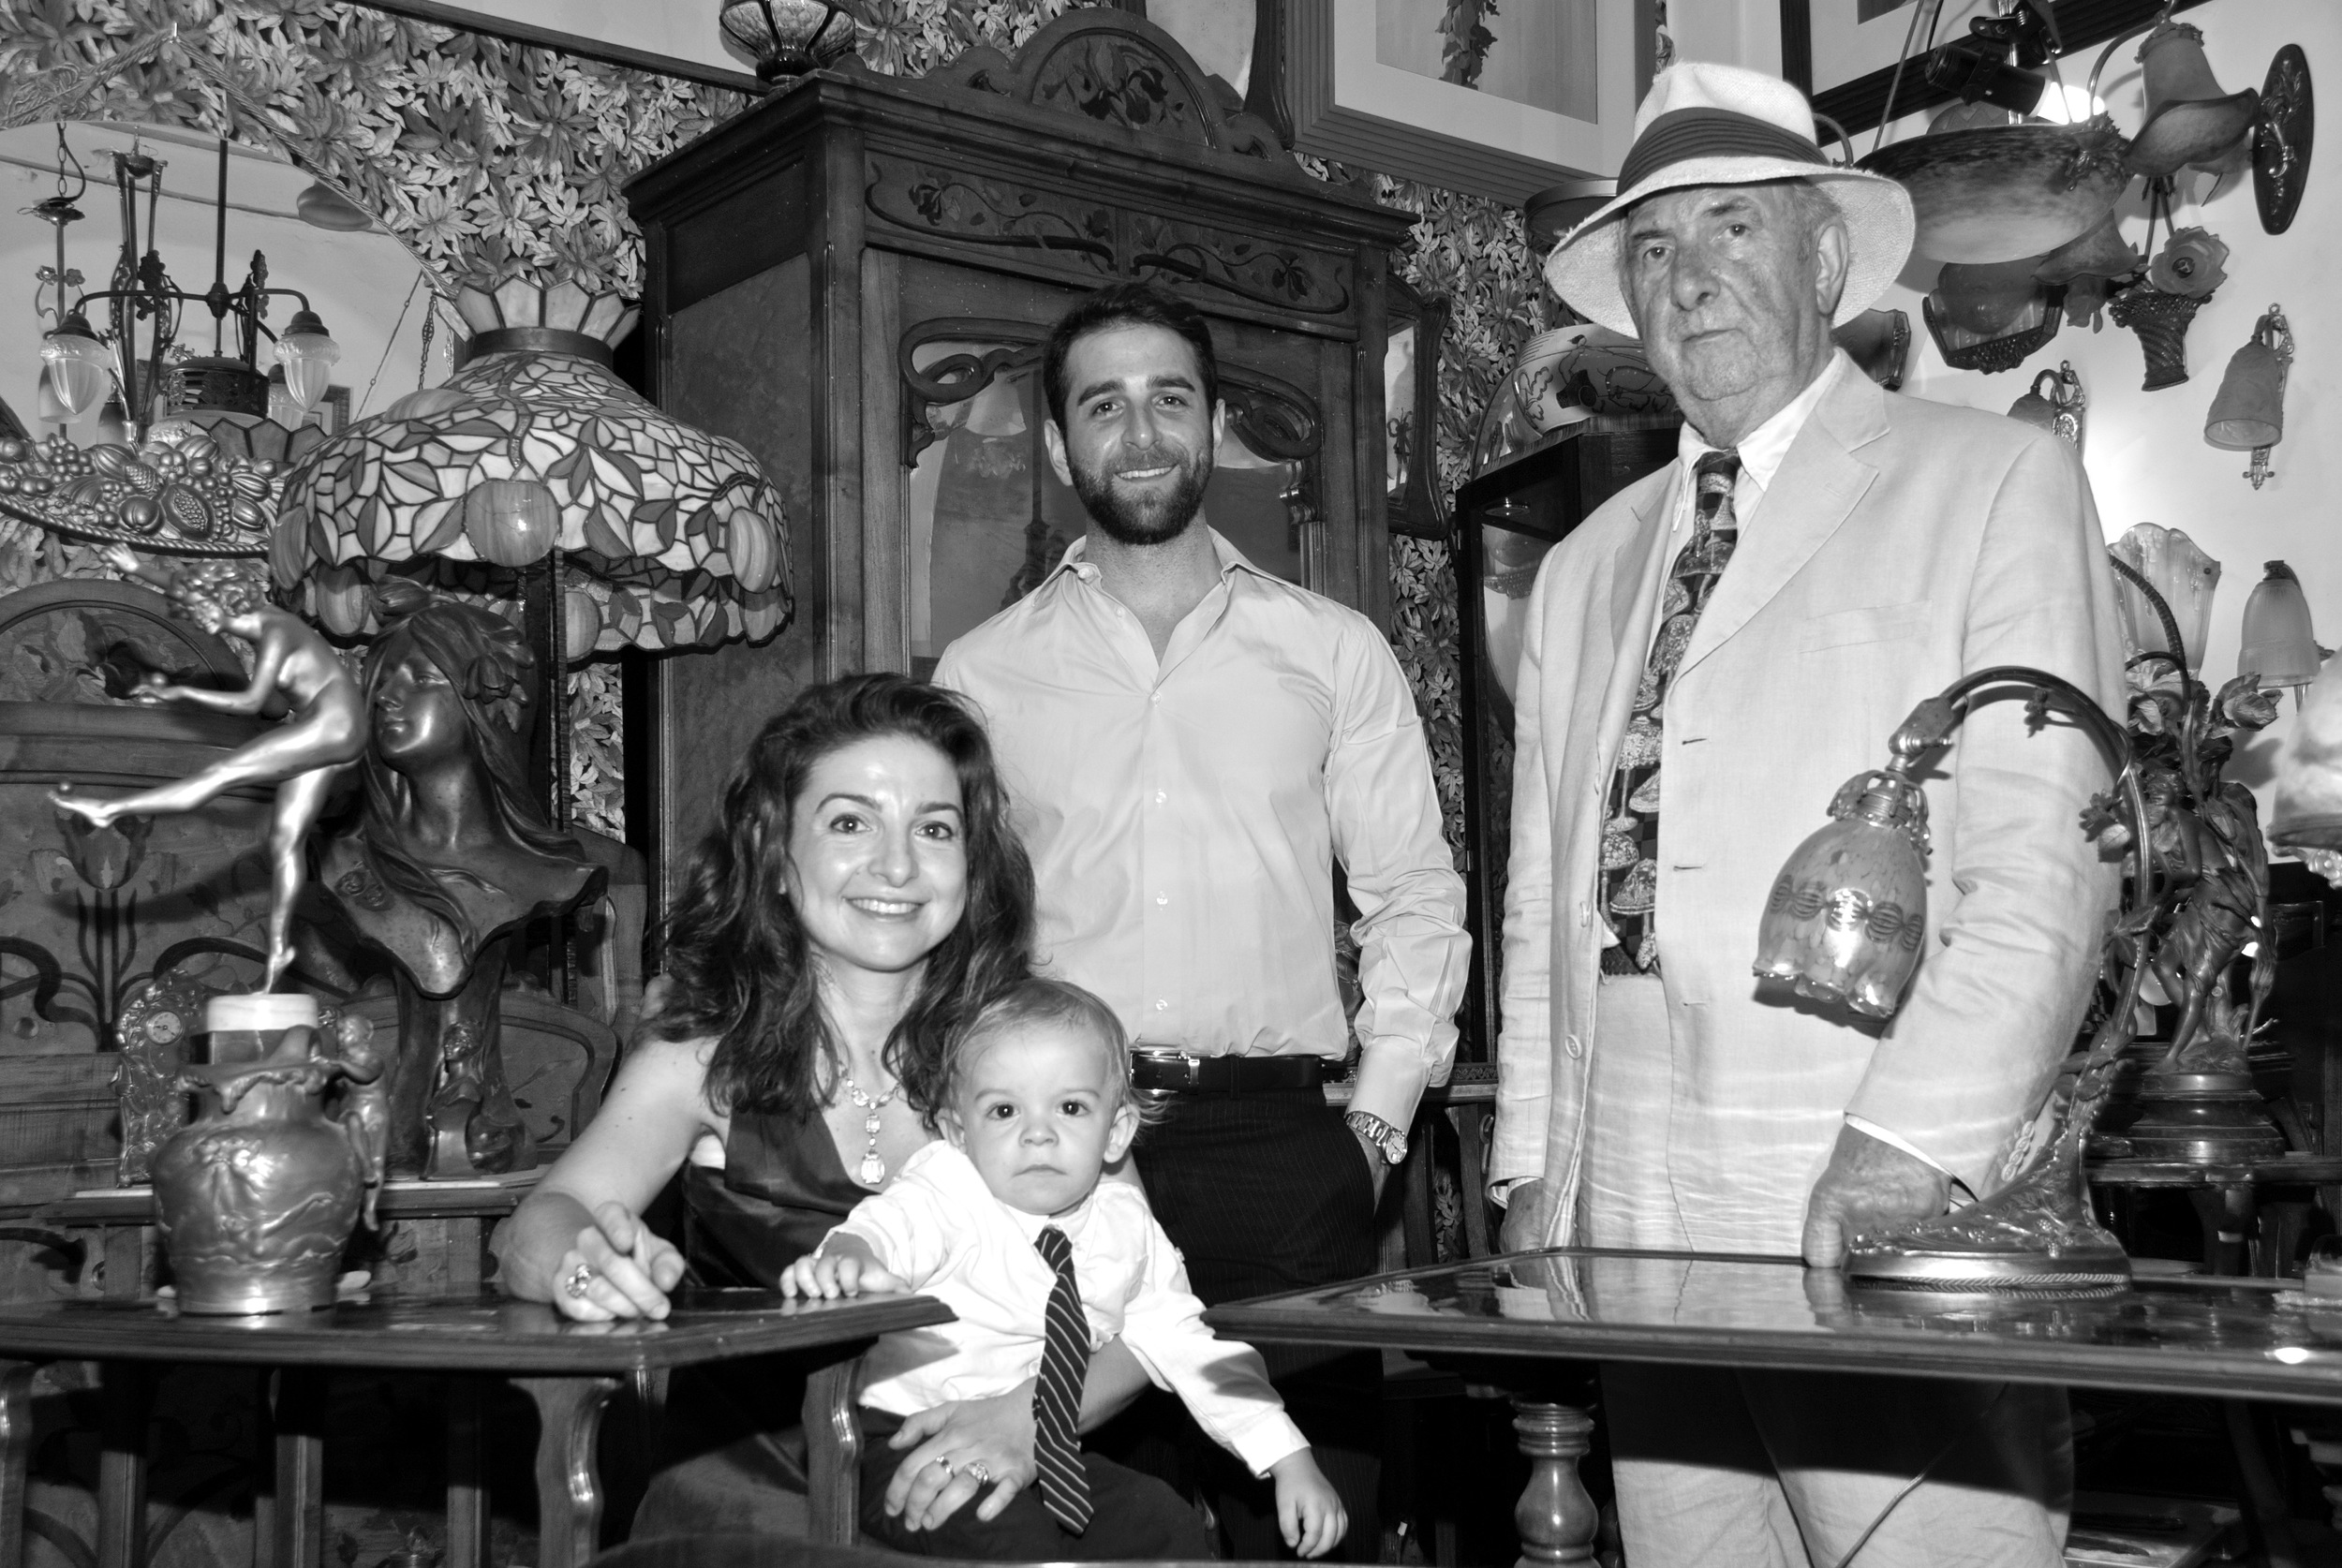 The Bruschini Tanca family in their gallery: from the left Chiara Bruschini Tanca, holding his son Matteo, the new and 4th generation, at her back Francesco Bruschini Tanca, her brother and on the right Mr. Guido Bruschini, their father.